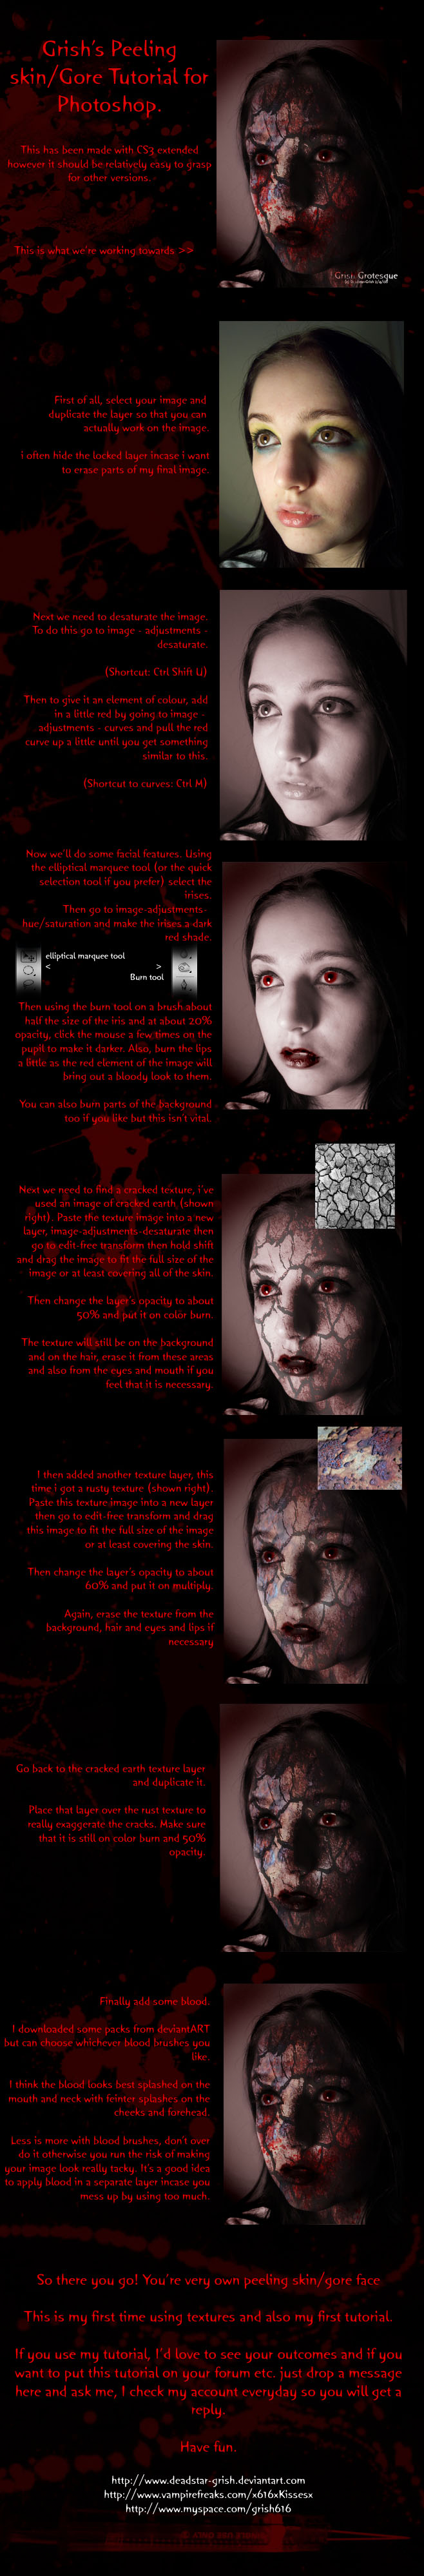 Peeling Skin and Gore Tutorial by Deadstar-Grish